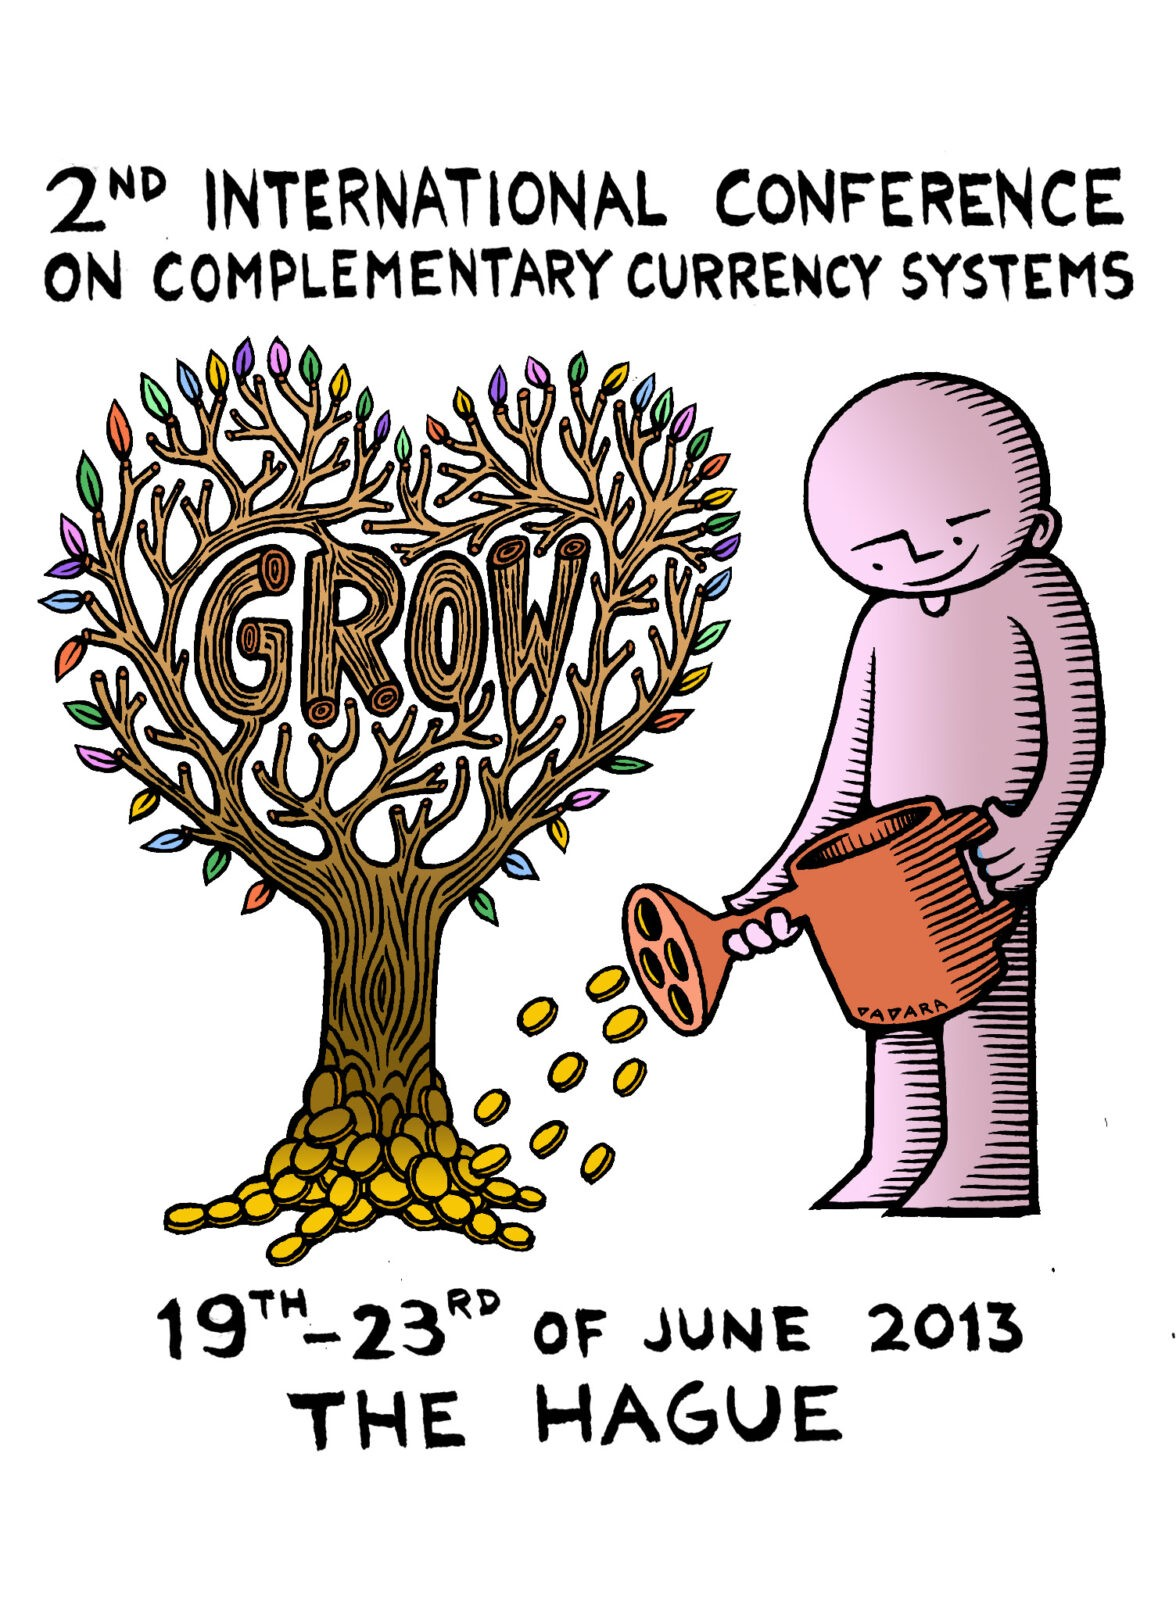 Conference on Complementary Currency Systems